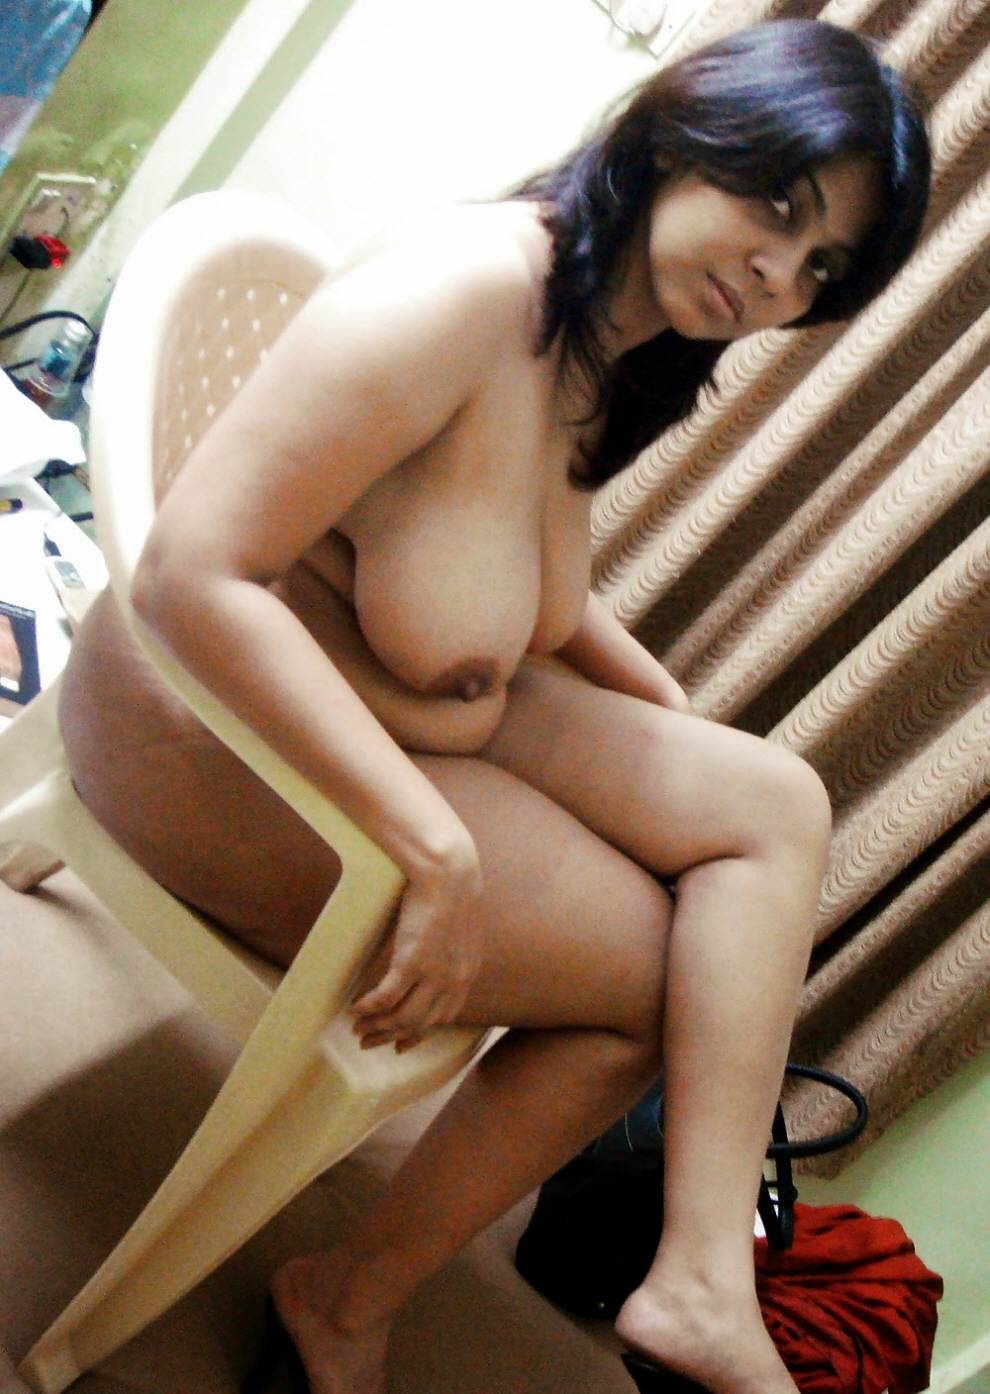 Indian desi porn sites